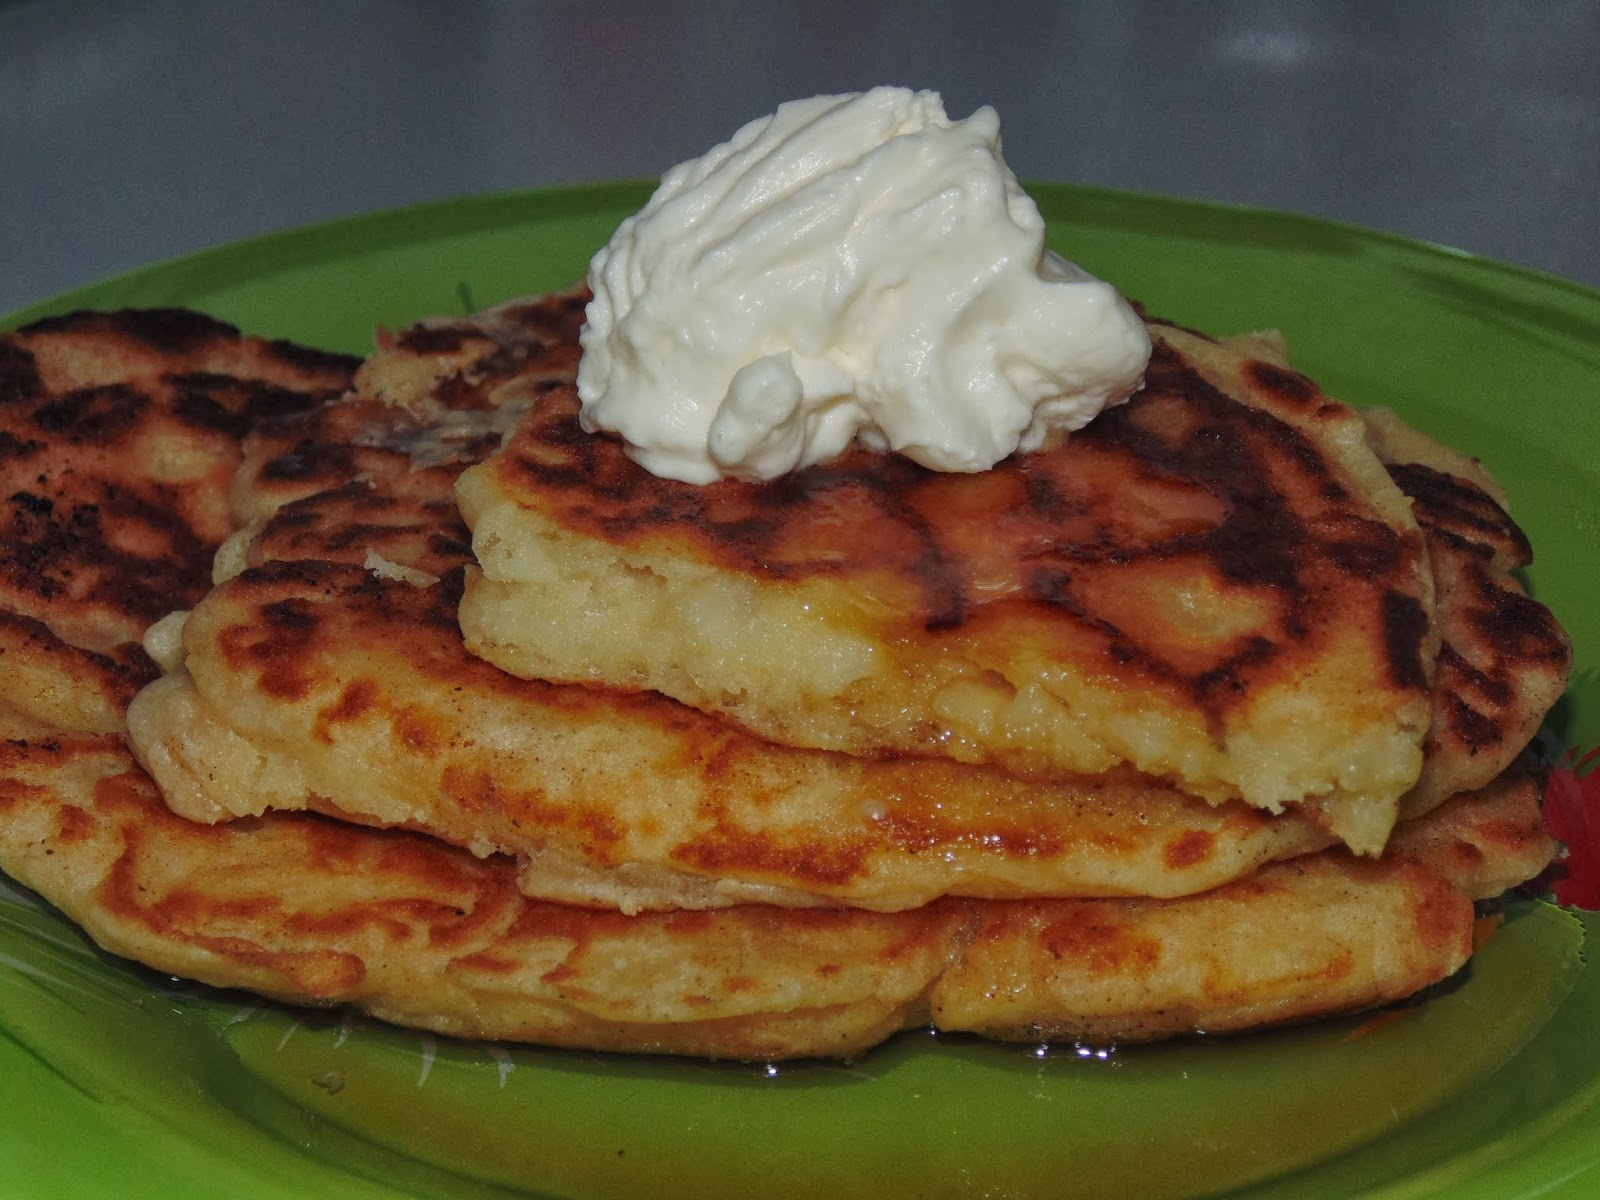 Apple pancakes - recipe (including photos) | Life in Luxembourg